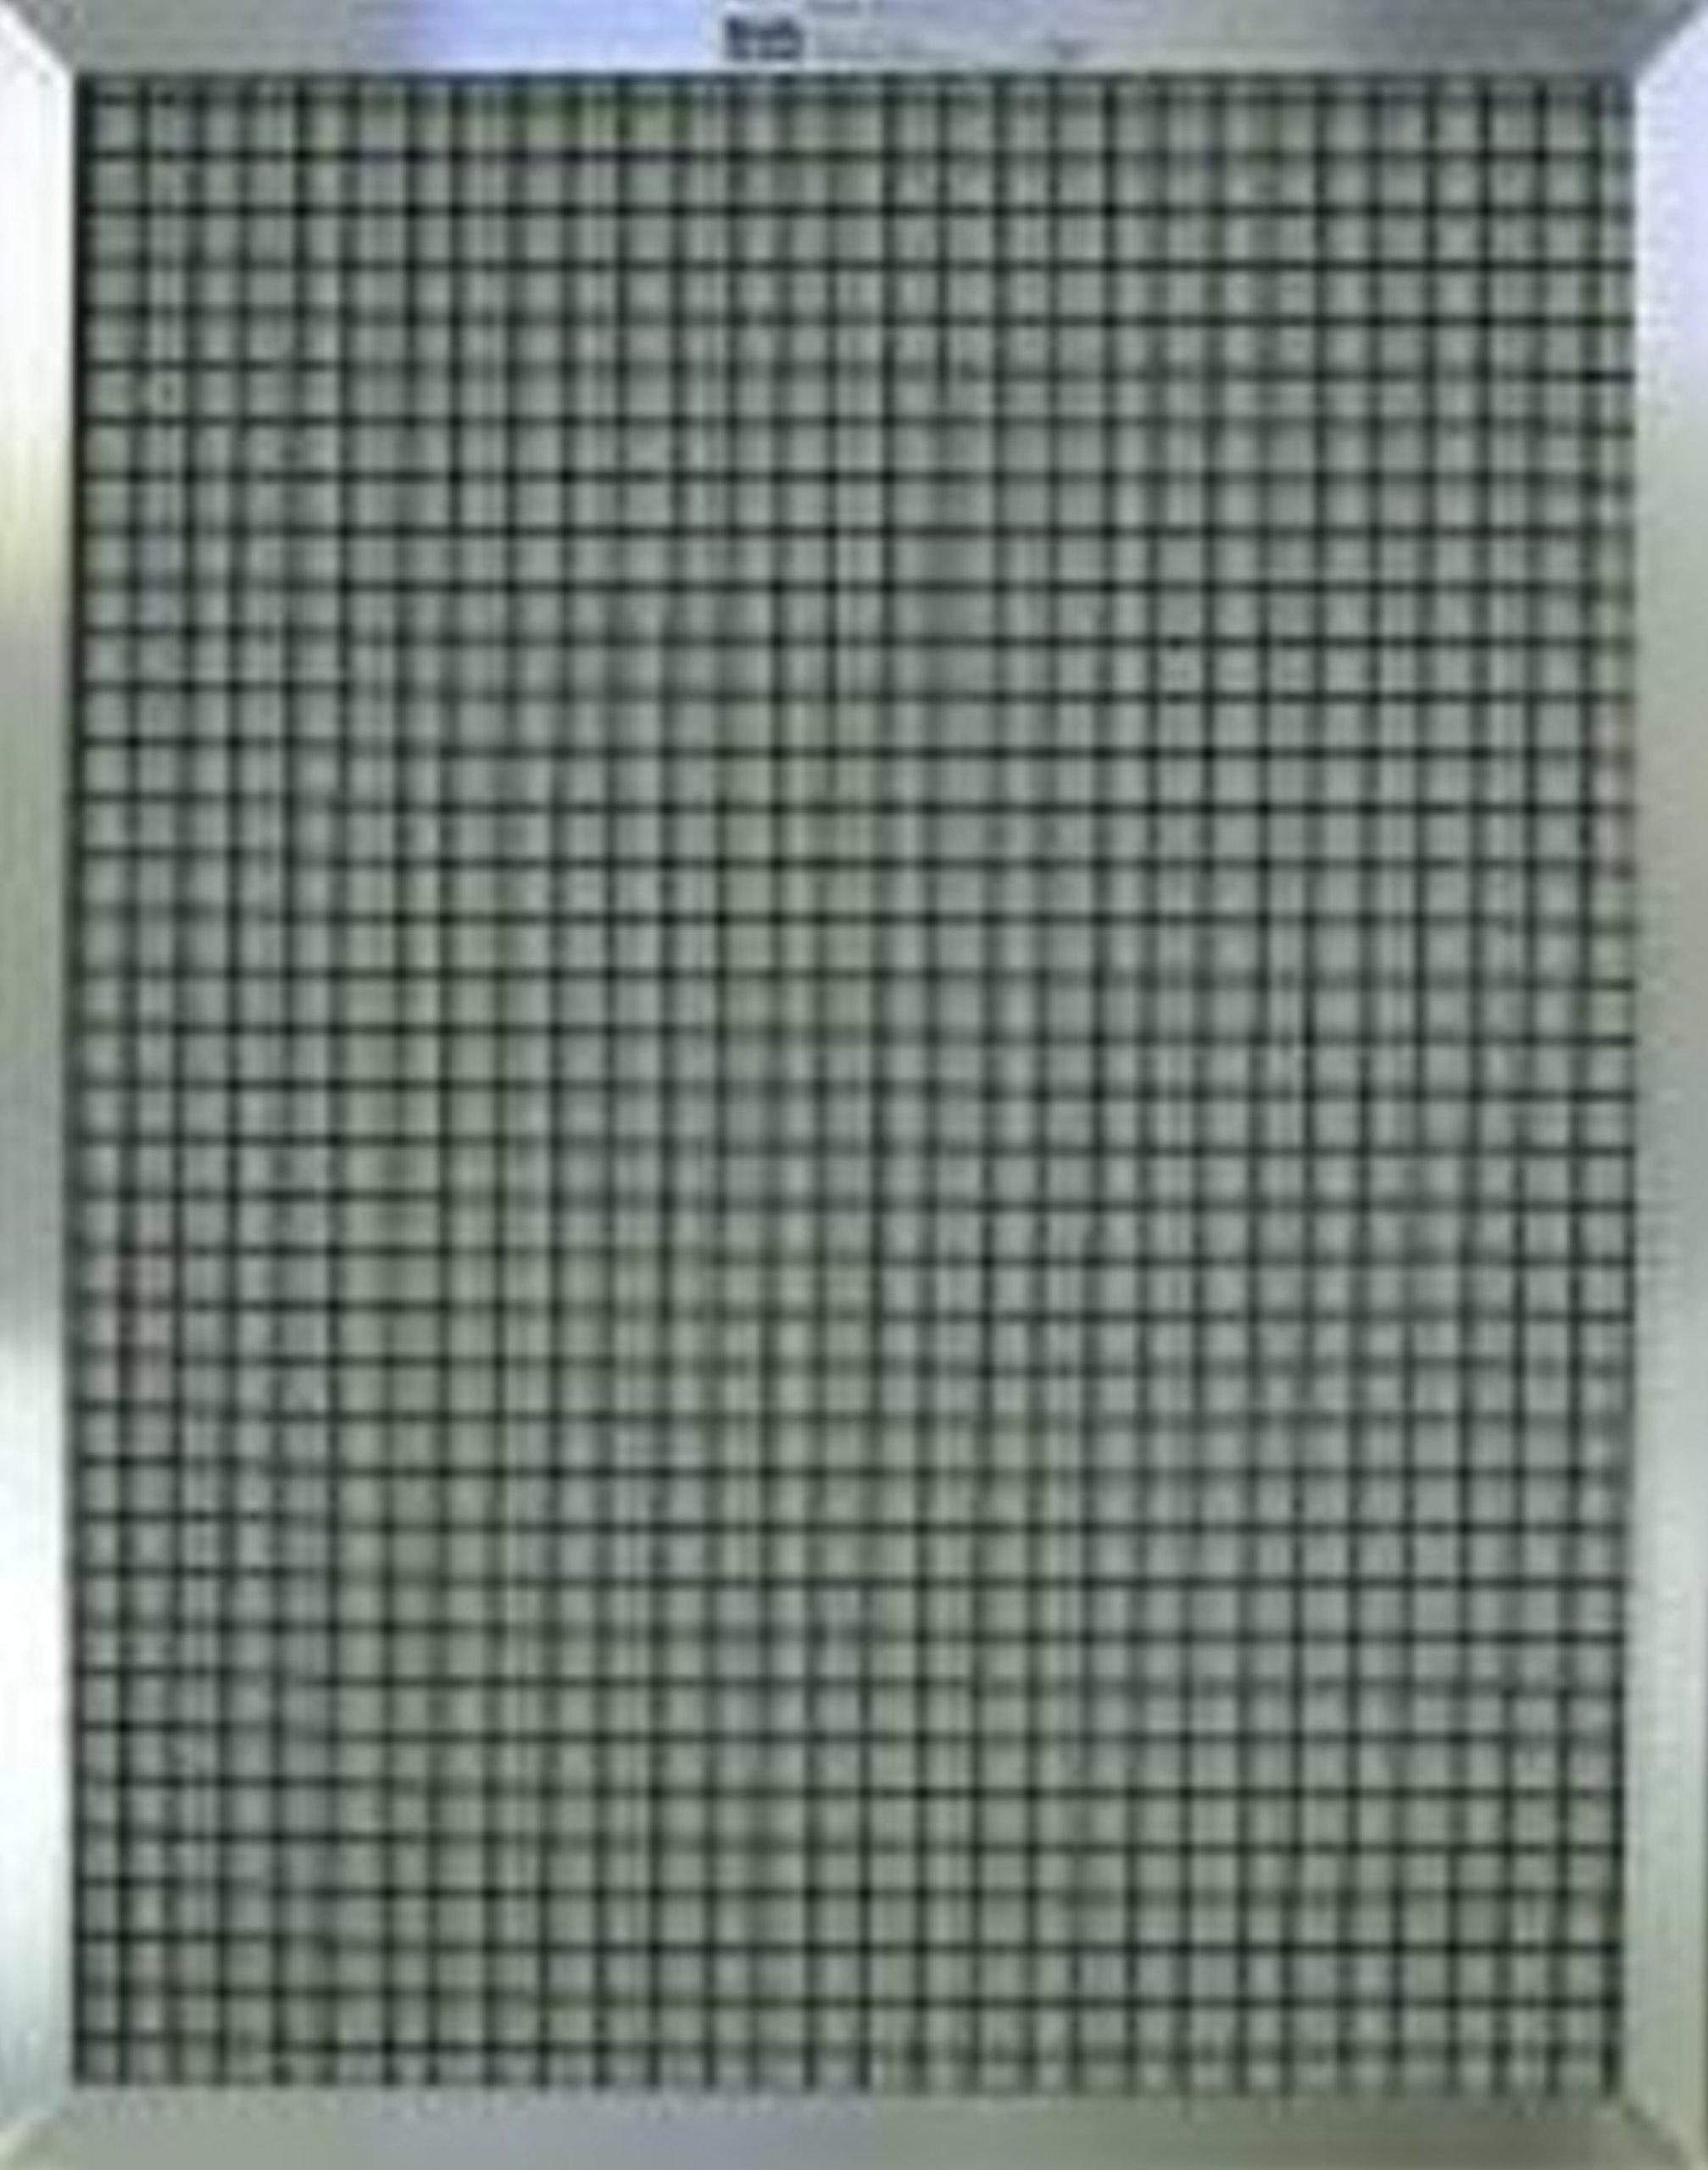 30x32x1 Permanent Washable Ac Furnace Air Filter - Lifetime Warr - Great for Geothermal